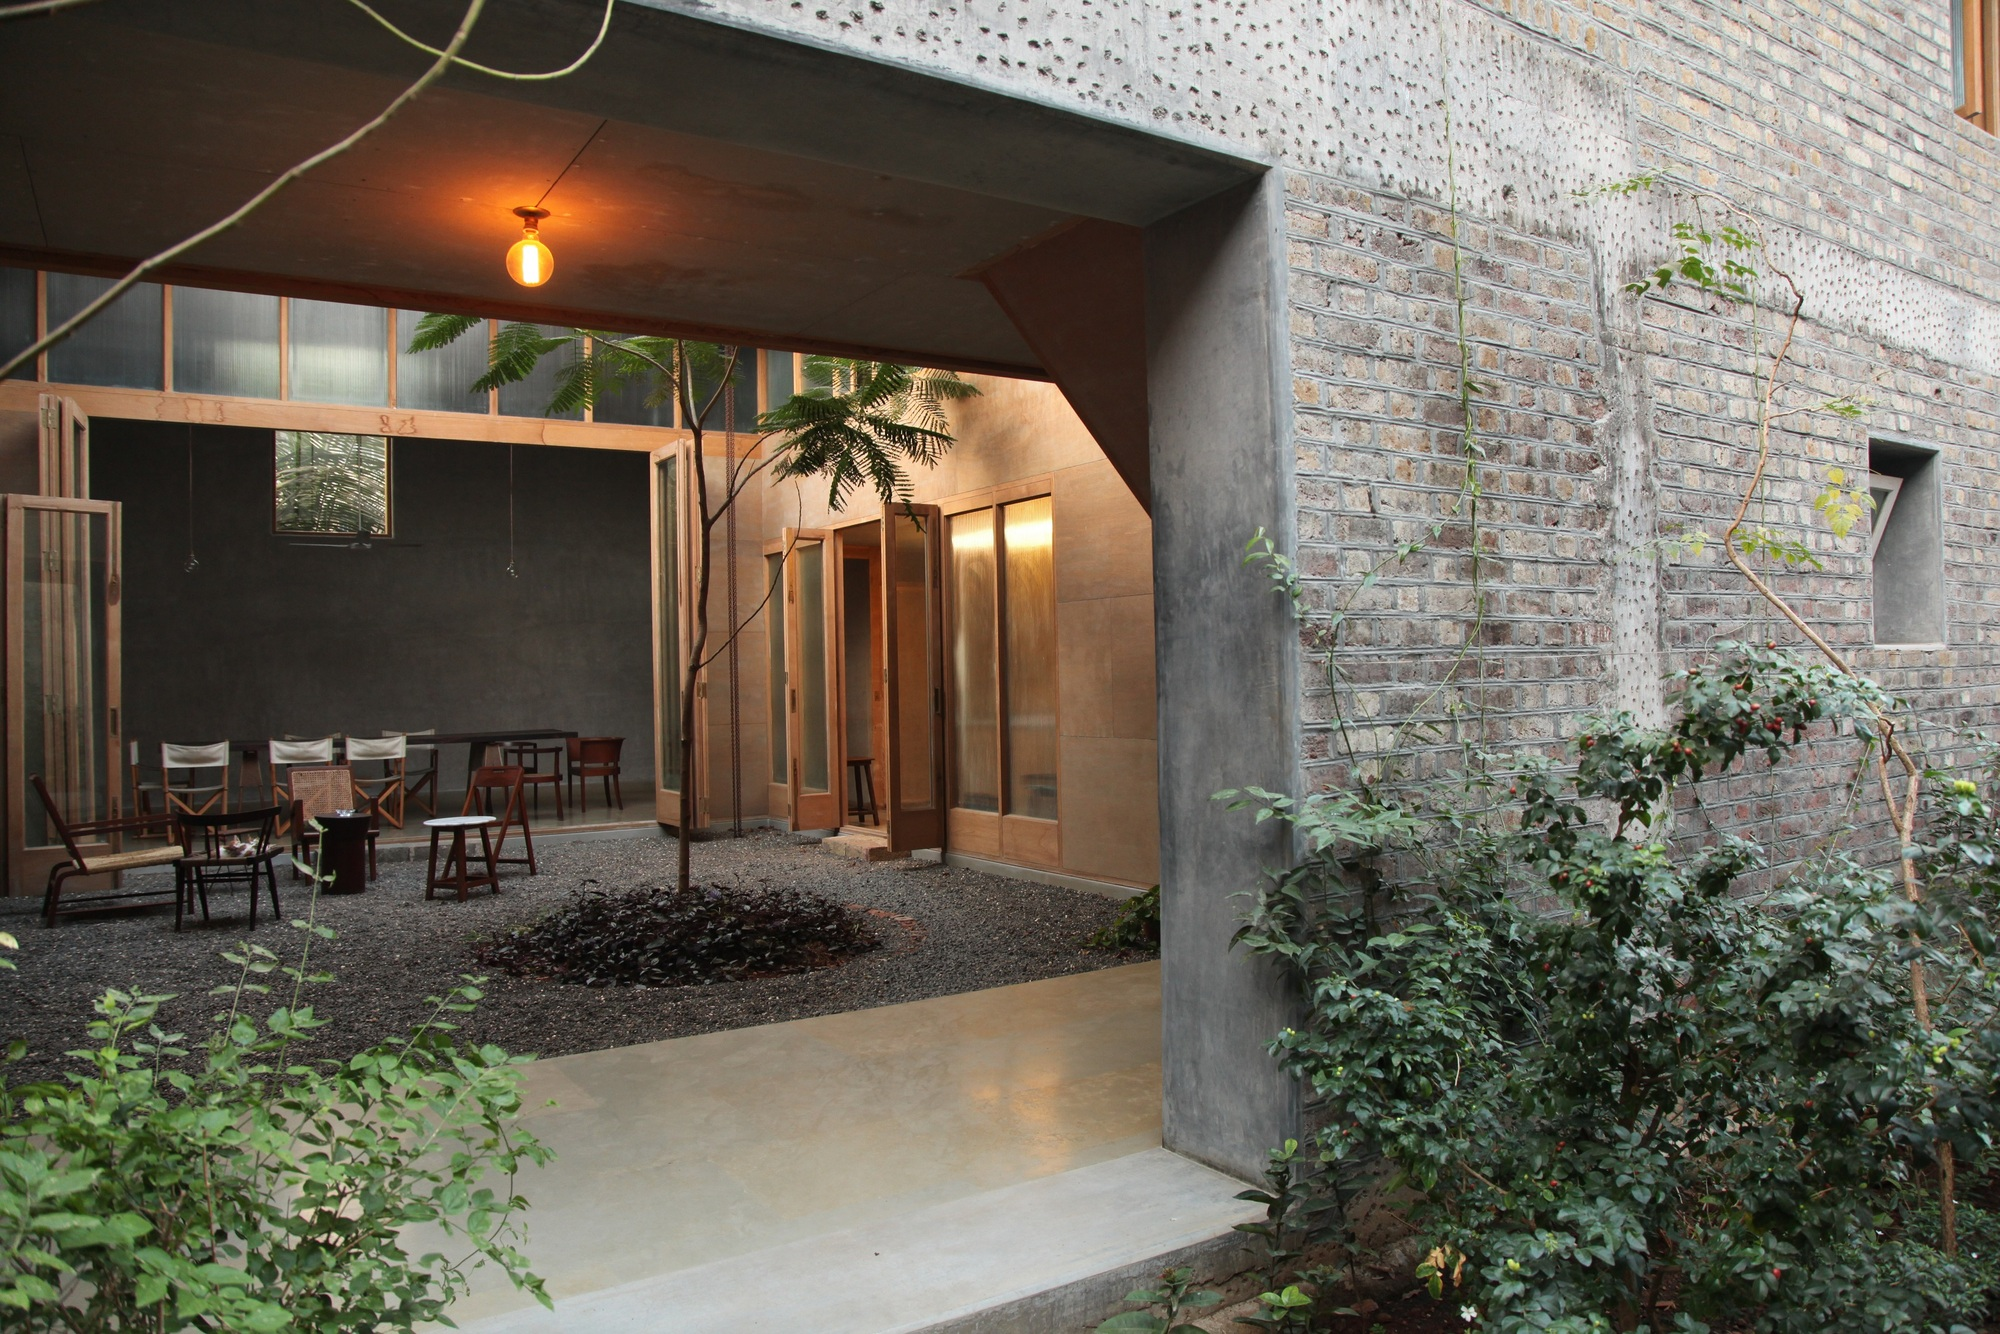 Low cost housing projects in bangalore dating 4